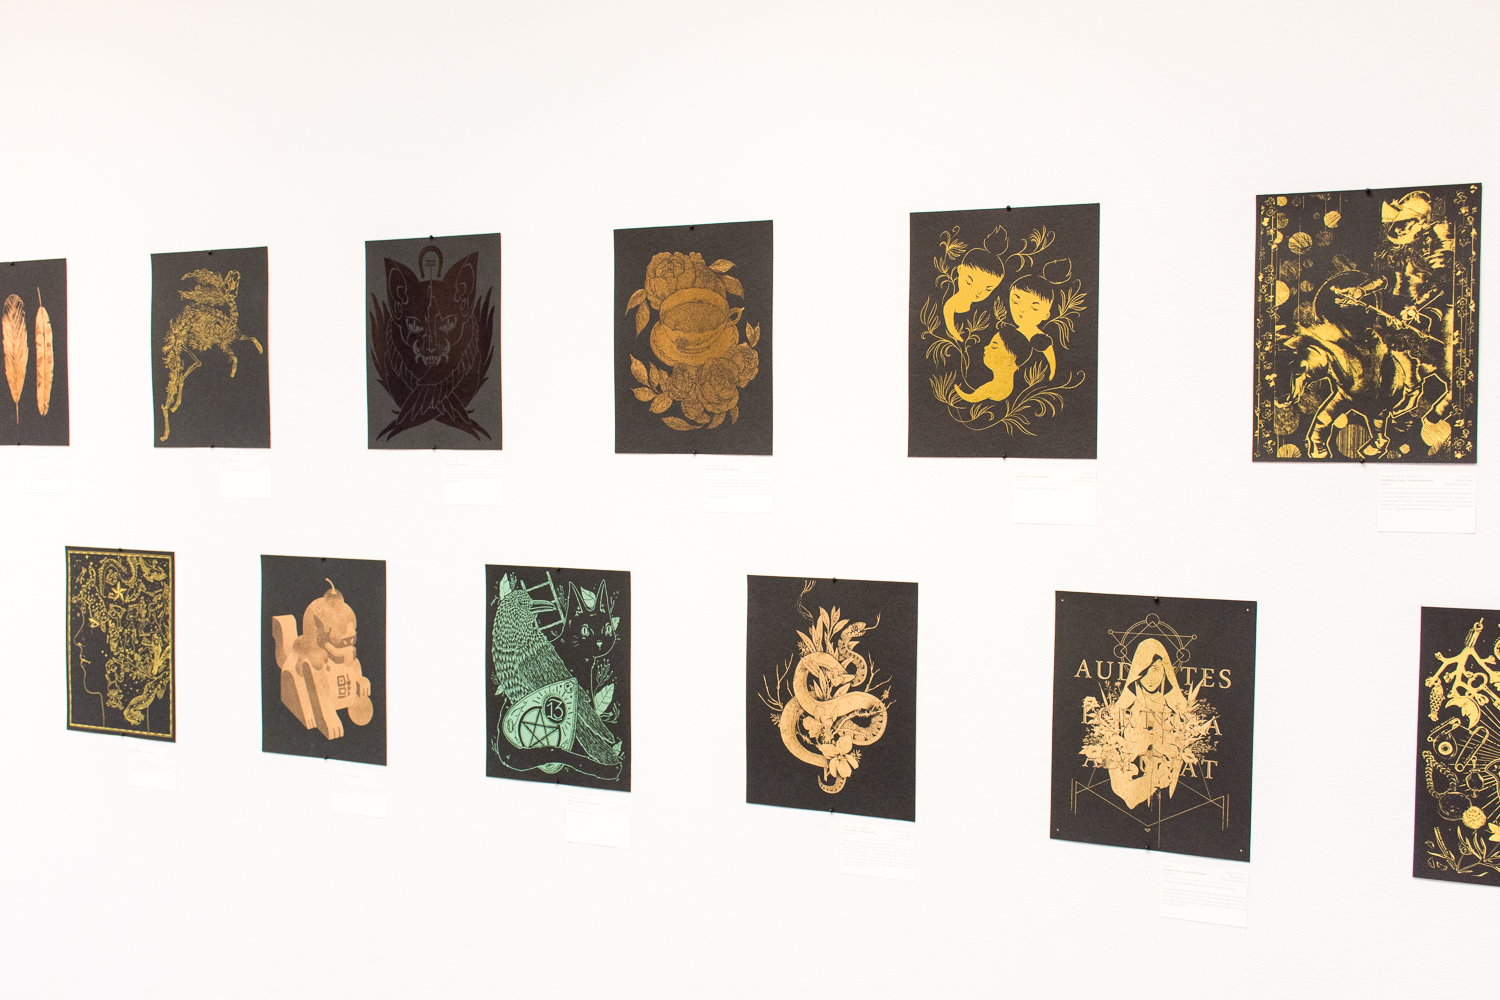 fig 5. The Fortune exhibition, my piece in the lower row middle (photo by Light Grey Art Lab)